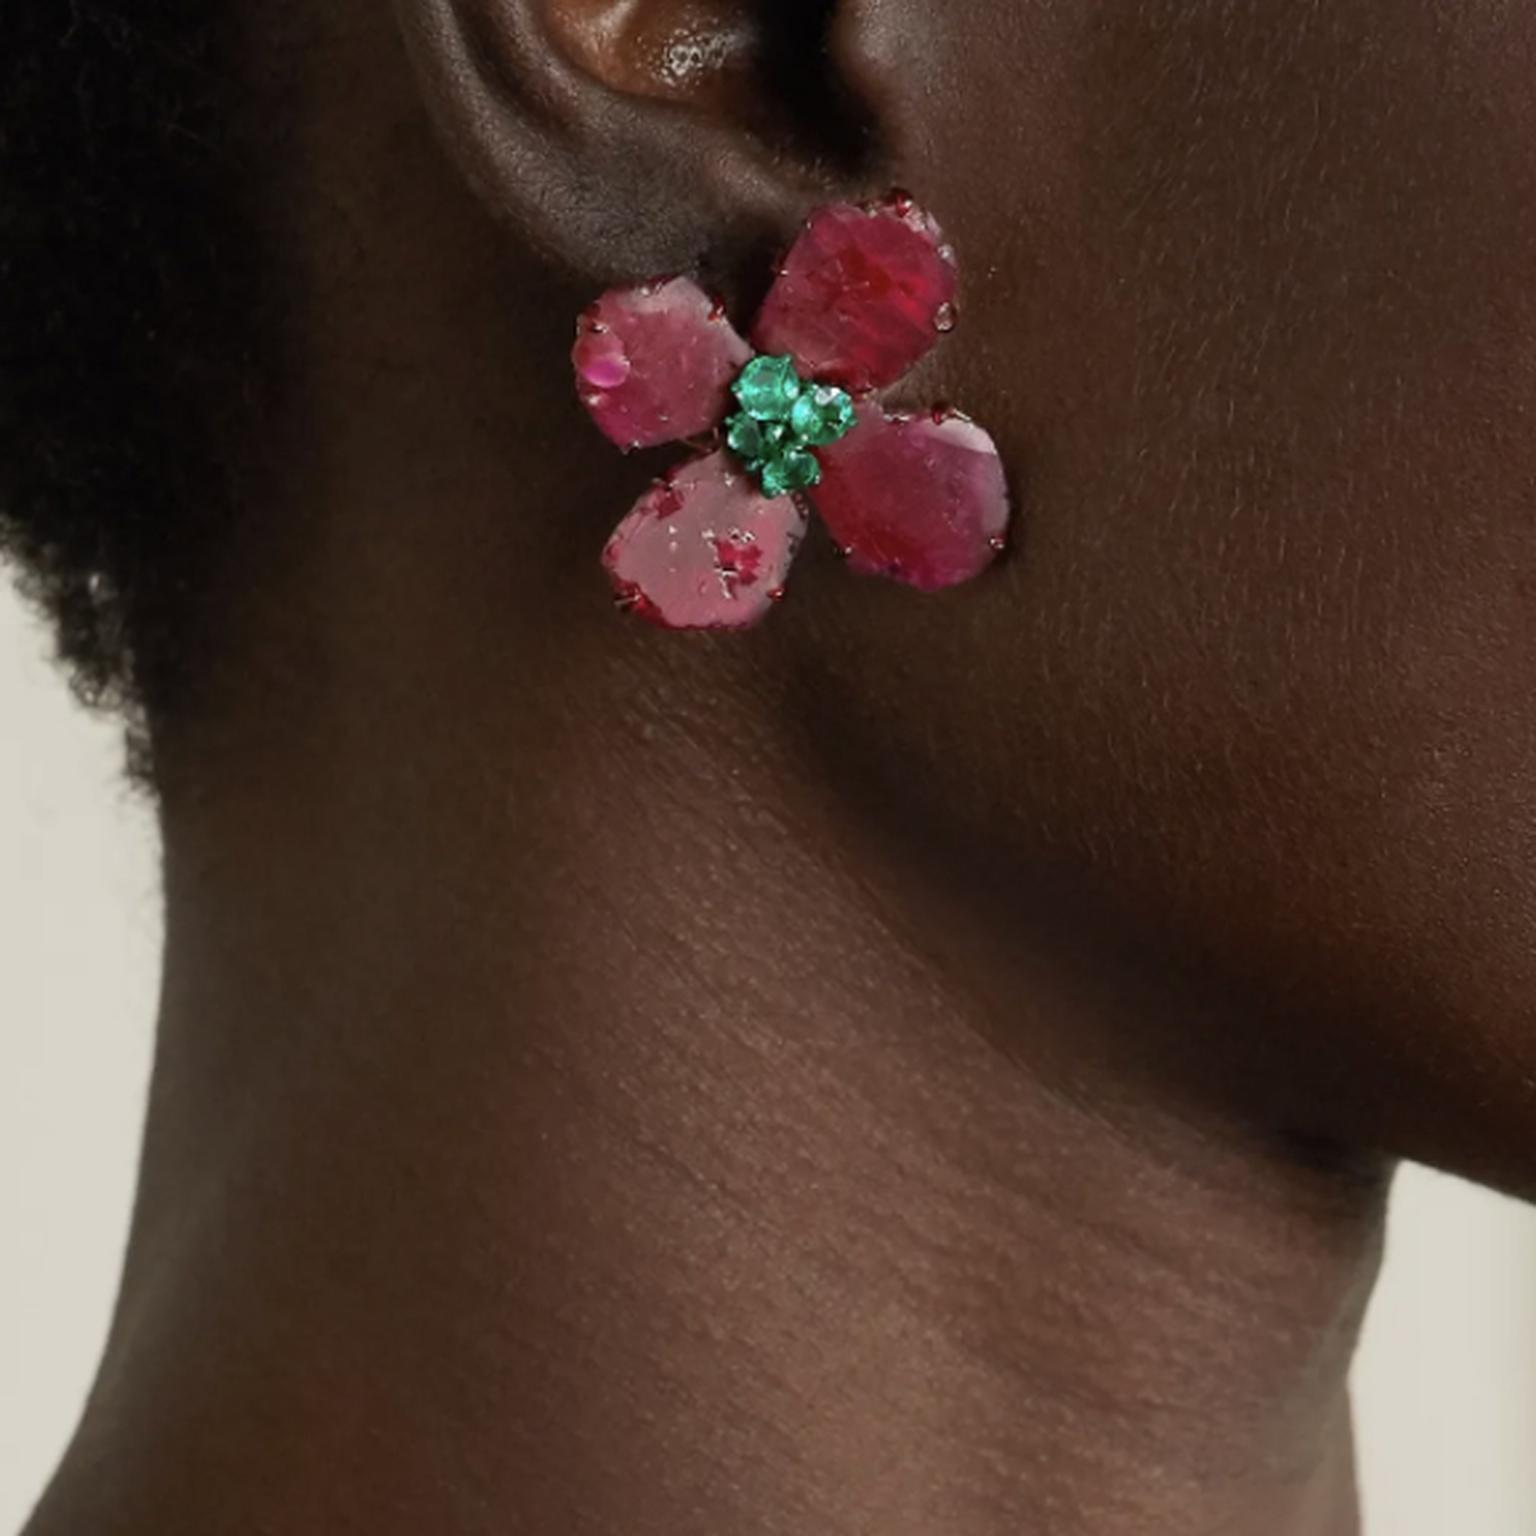 Earrings by Bina Goenka on model